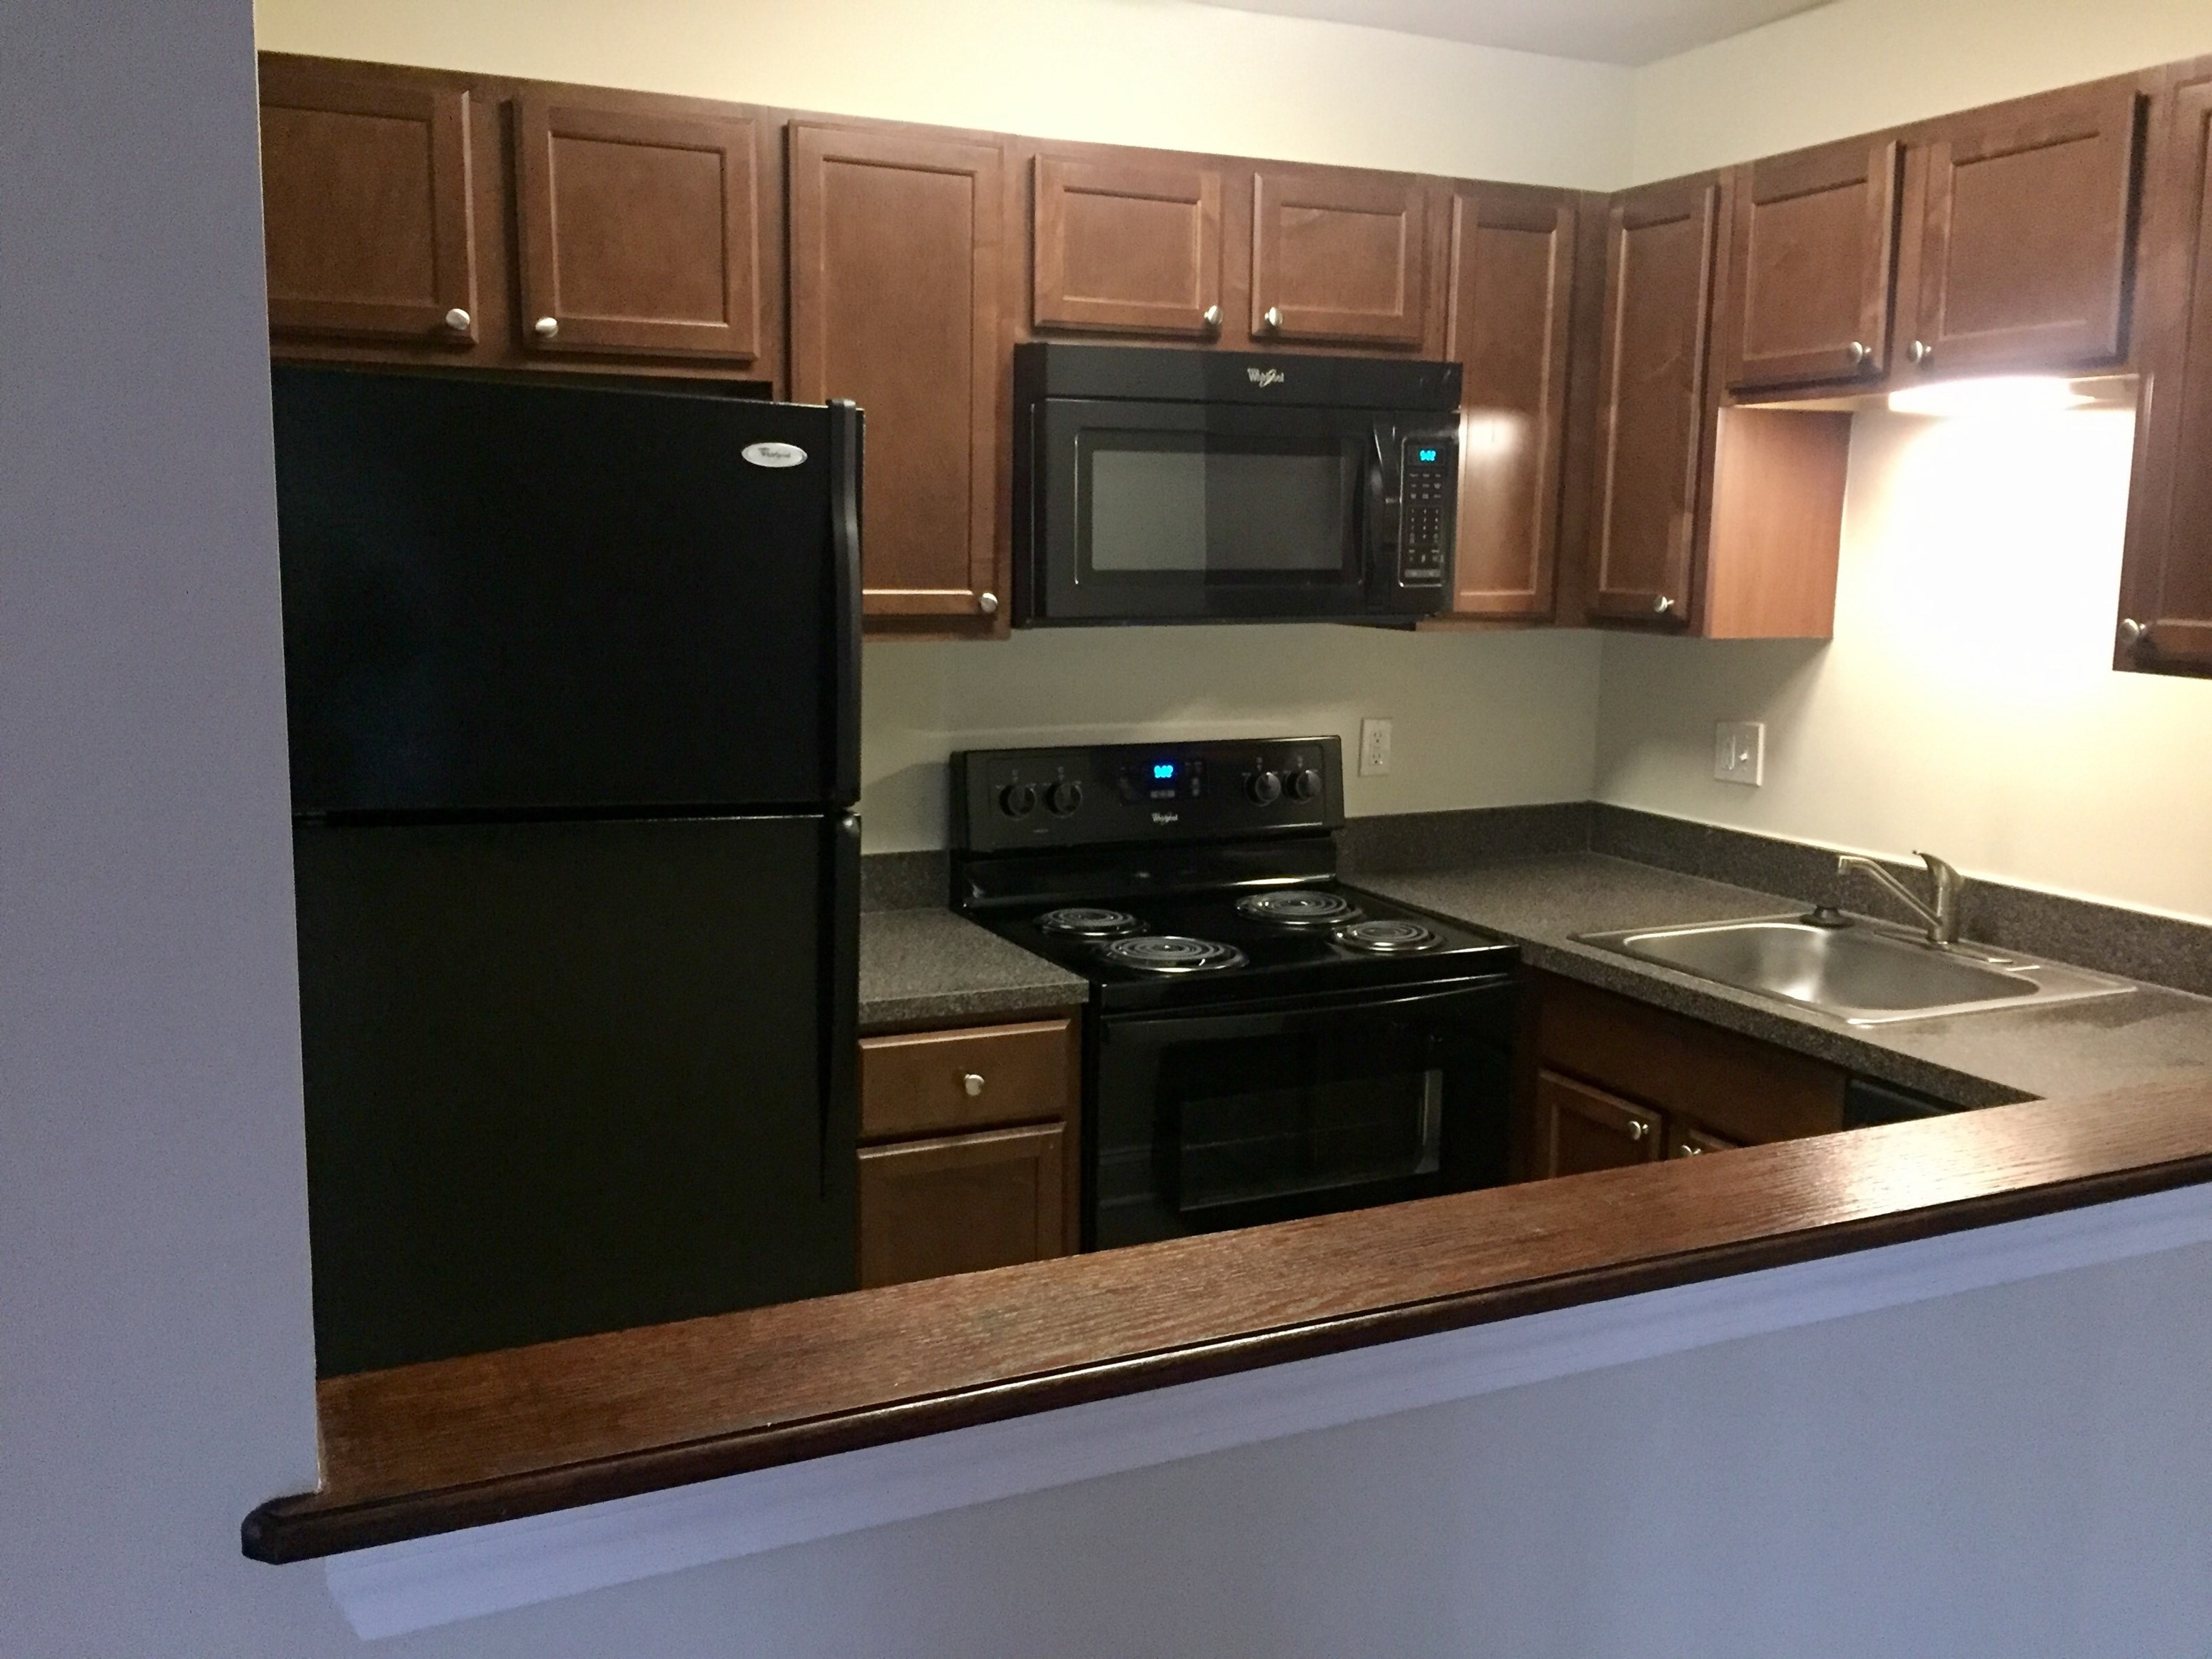 1 Bedroom APT For Sub Lease Commons At Windsor Gardens,Norwood